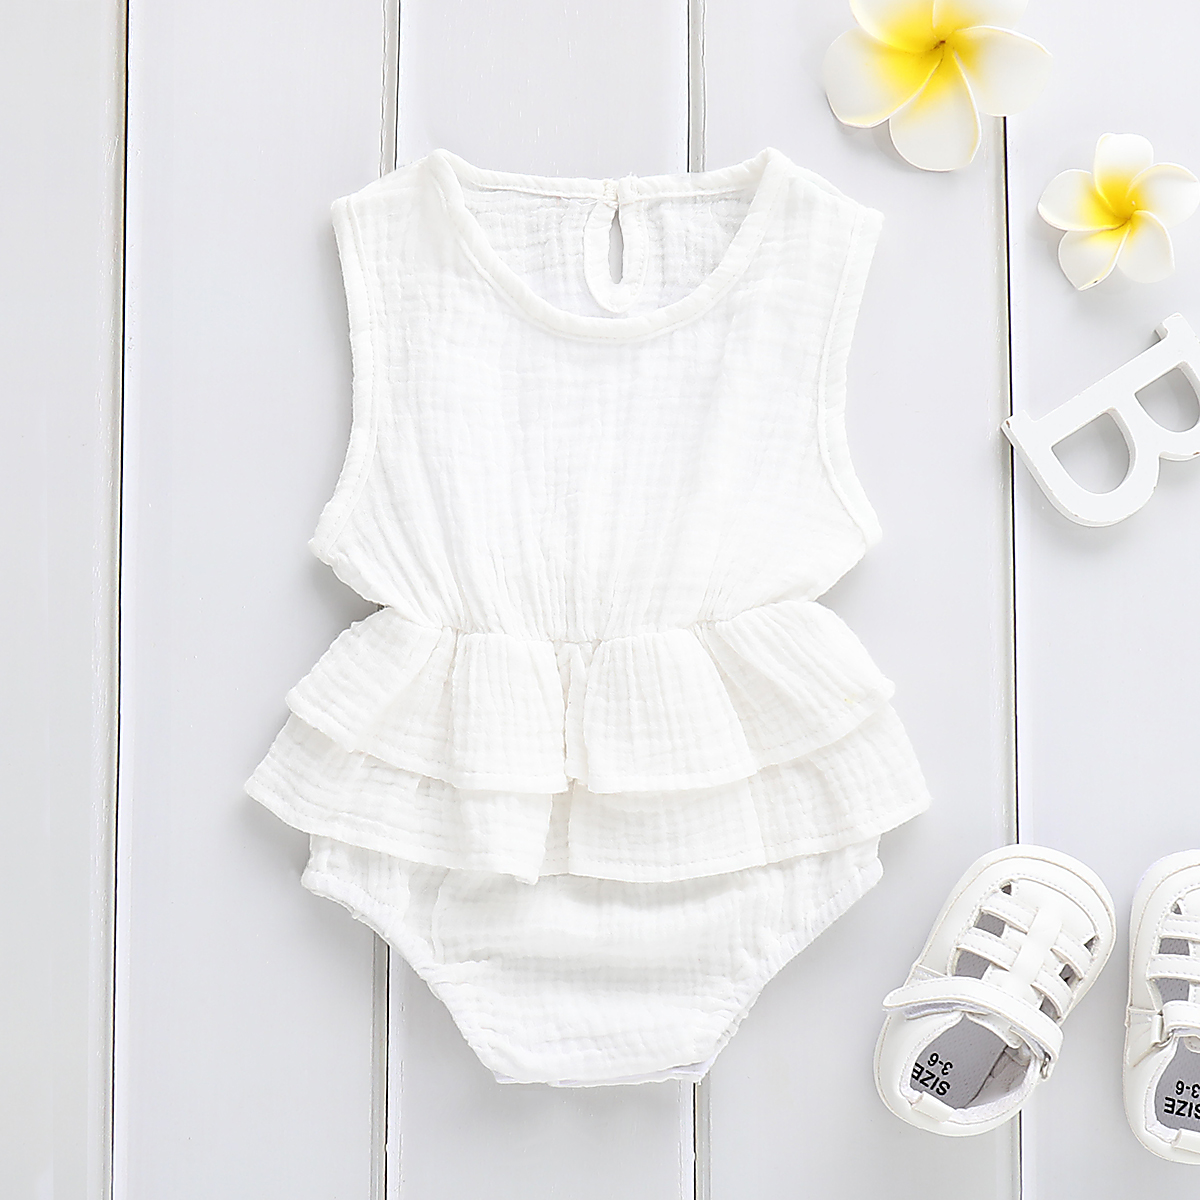 Solid Newborn Kid Baby Girl Clothes Sleeveless Romper Tutu Dress 1PC Sunsuit Outfit Solid Newborn Kid Baby Girl Clothes Sleeveless Romper Tutu Dress 1PC Sunsuit Outfit